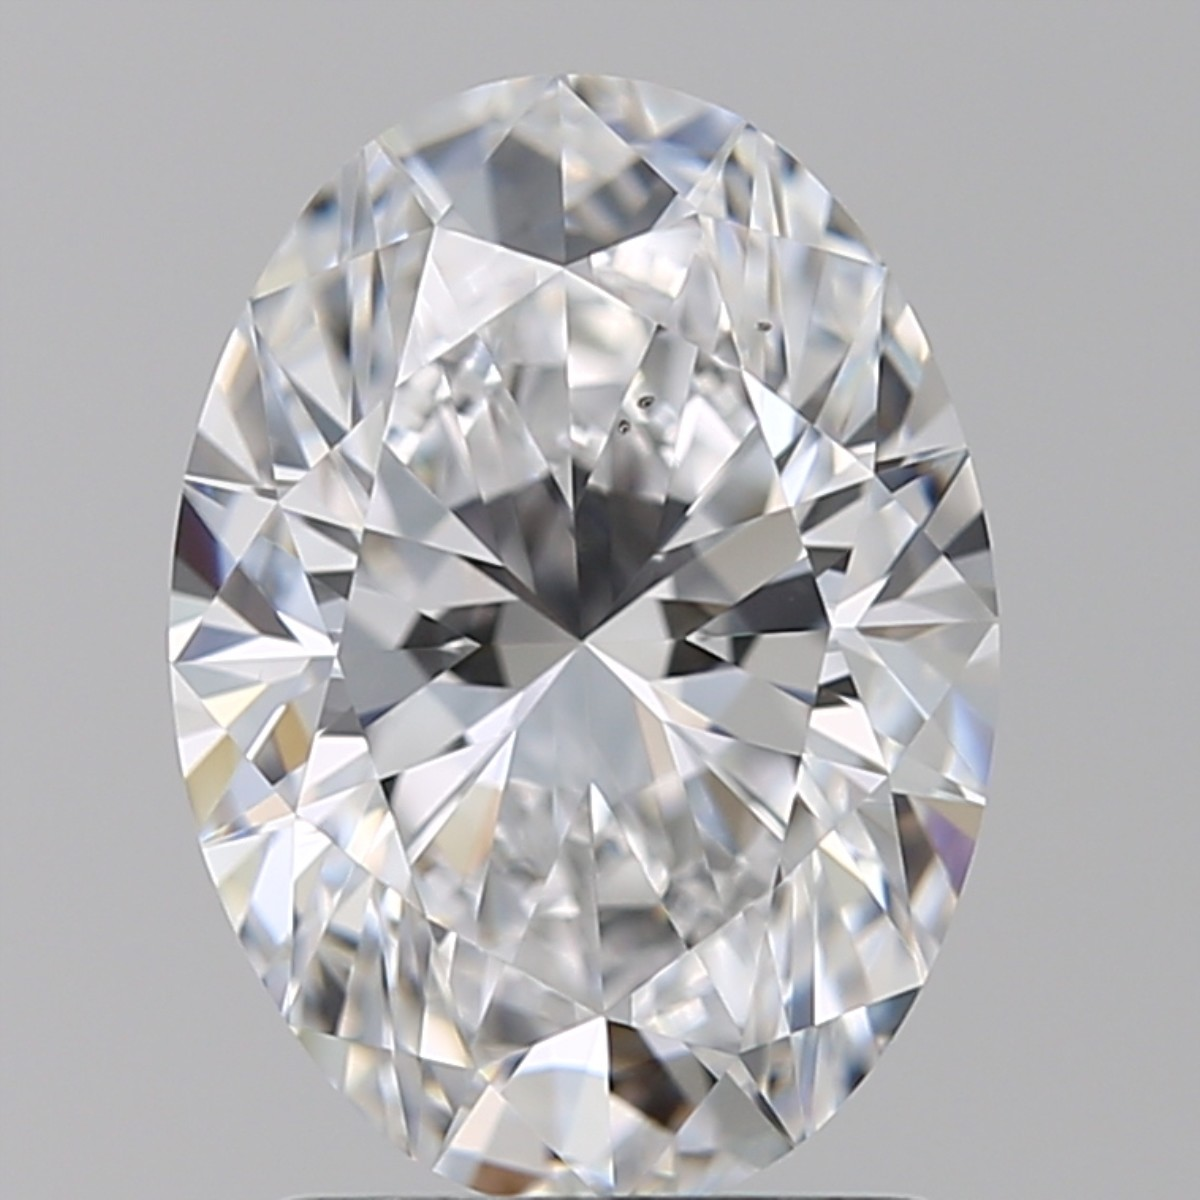 1.74 Carat Oval Diamond (D/VS2)